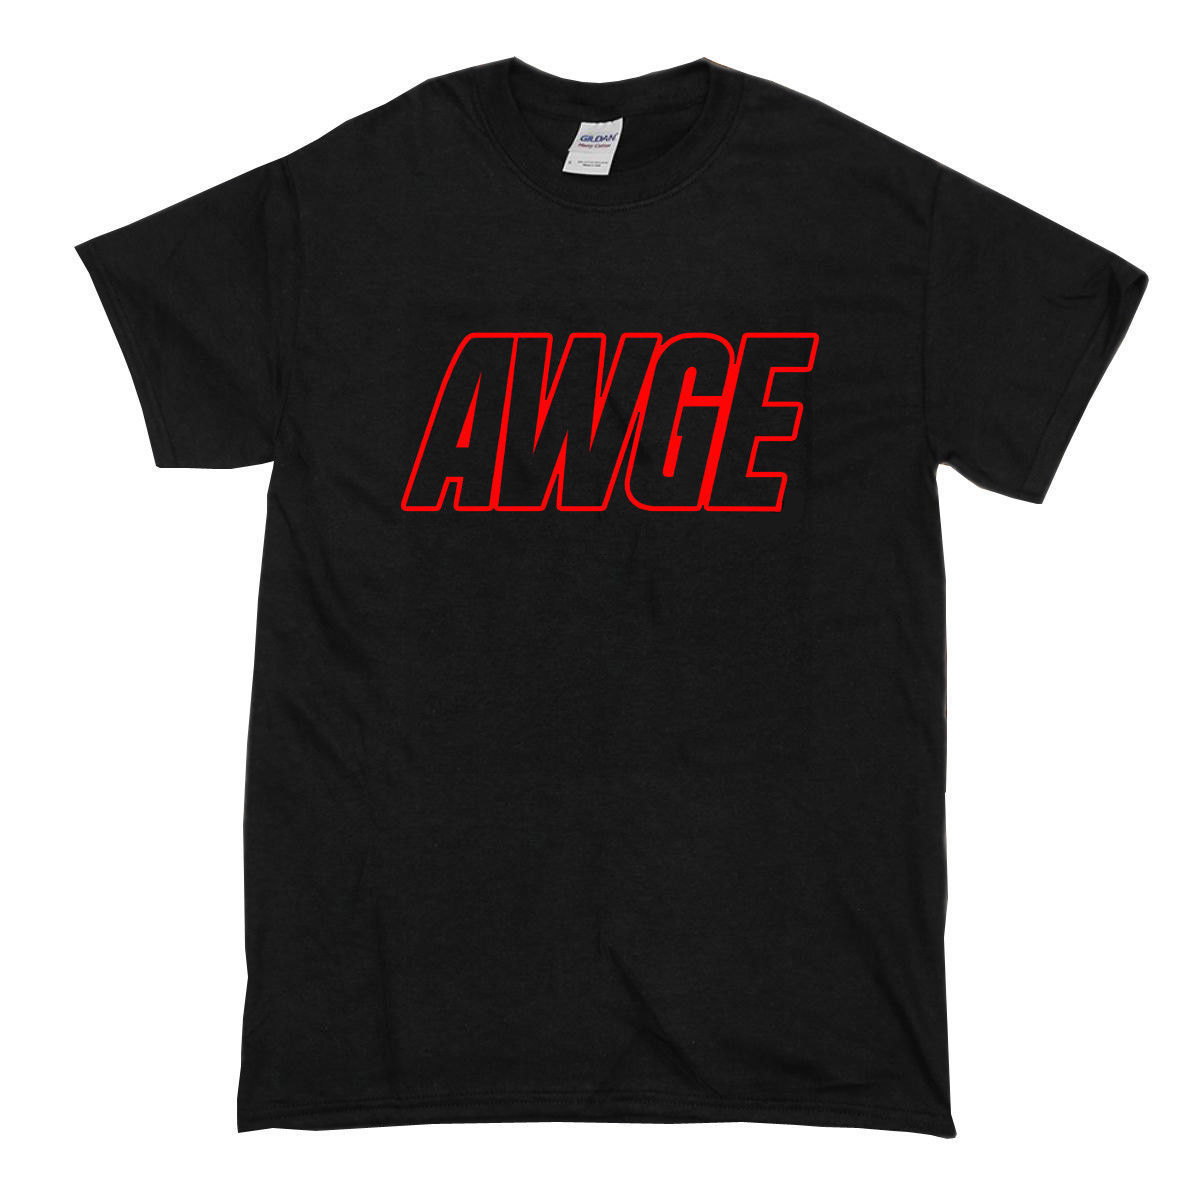 Hot Item Awge Or Nothing Size Usa T Shirt T-Shirt Male Female Personalized Round Neck Men's Tshirt Clothing Letter Tops Tee image